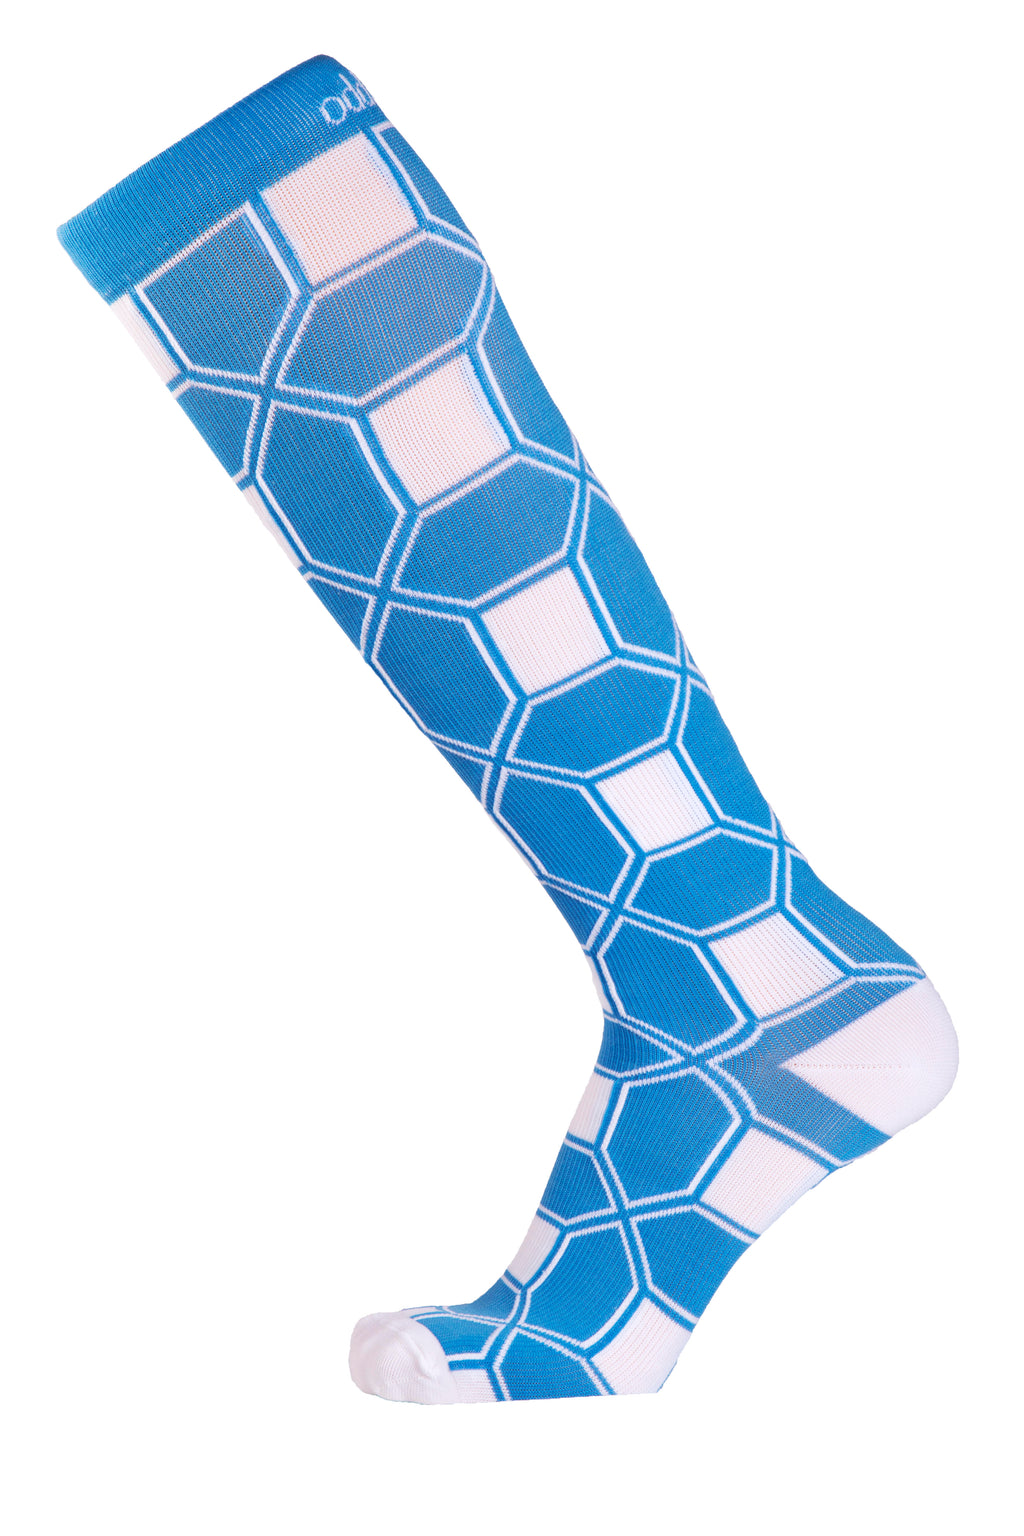 Royale Rhythm Compression Socks (15-20mmHg) - just below the knee